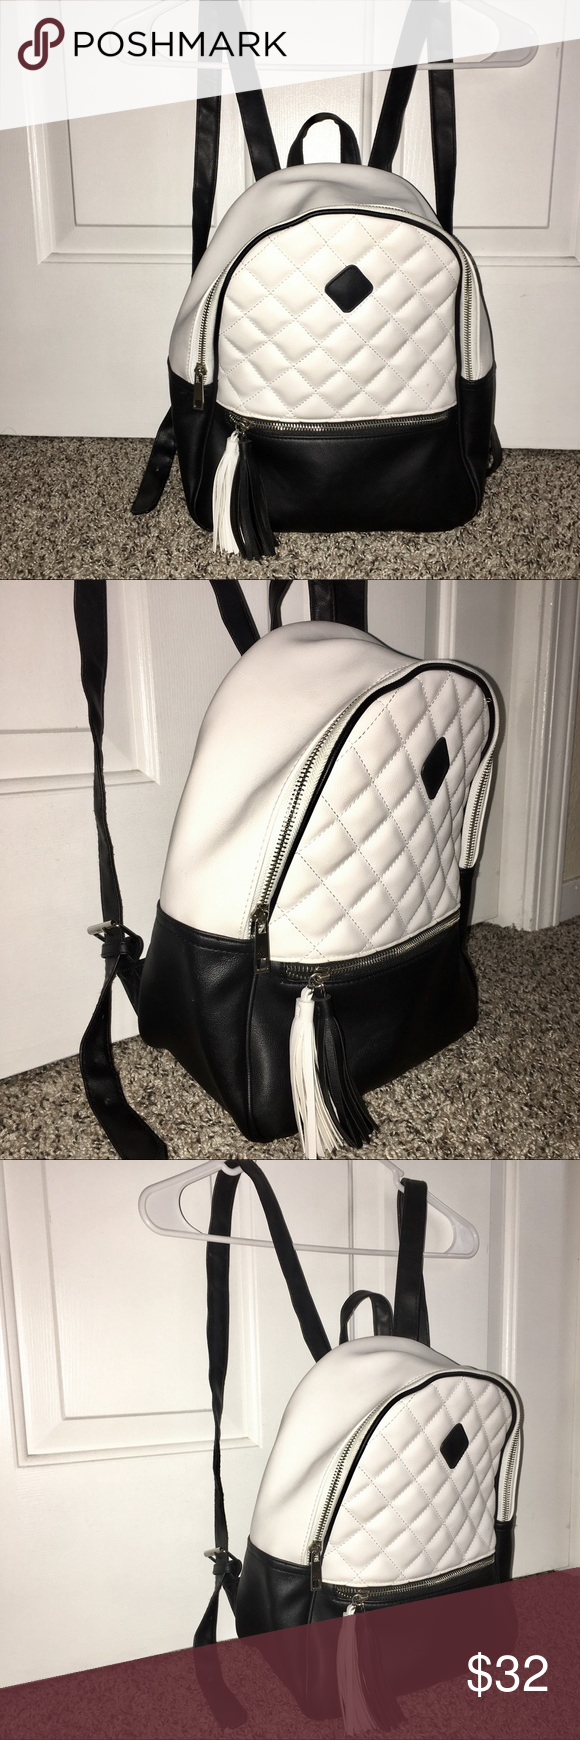 ec4451b0b Monochrome Quilted Backpack🖤 The backpack features faux leather fabric  with adjustable straps and a grab